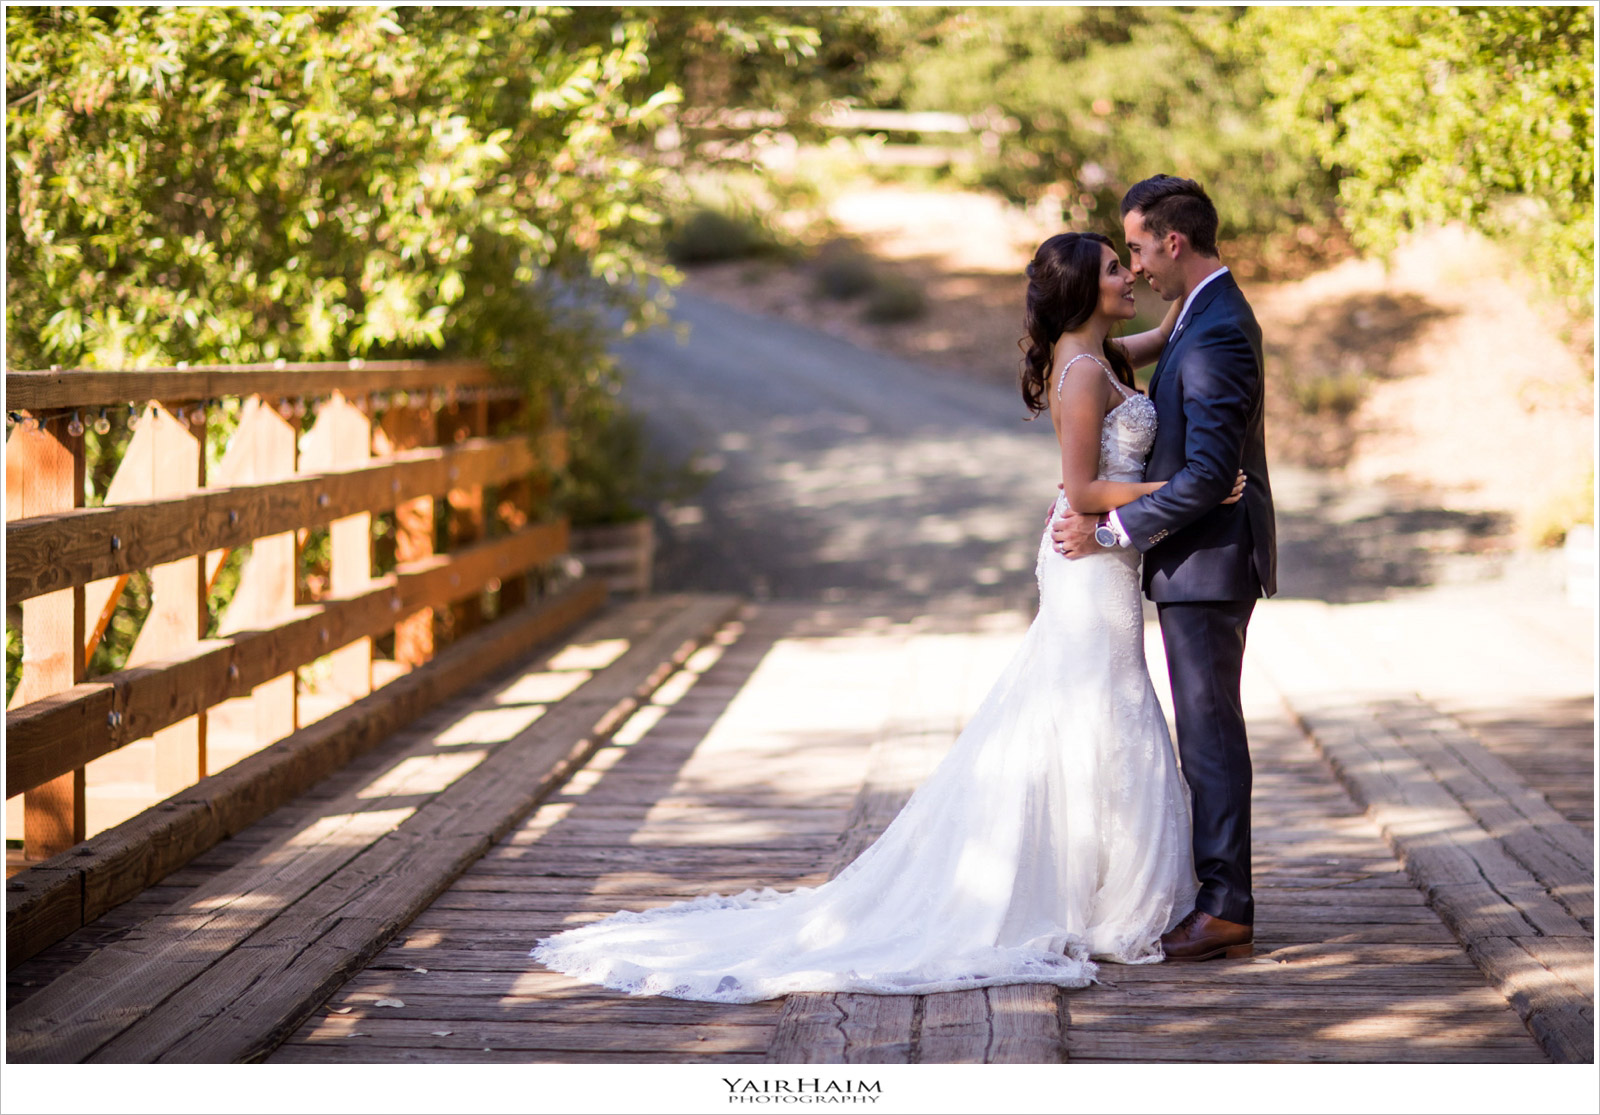 Destination-wedding-photographer-Yair-Haim-32